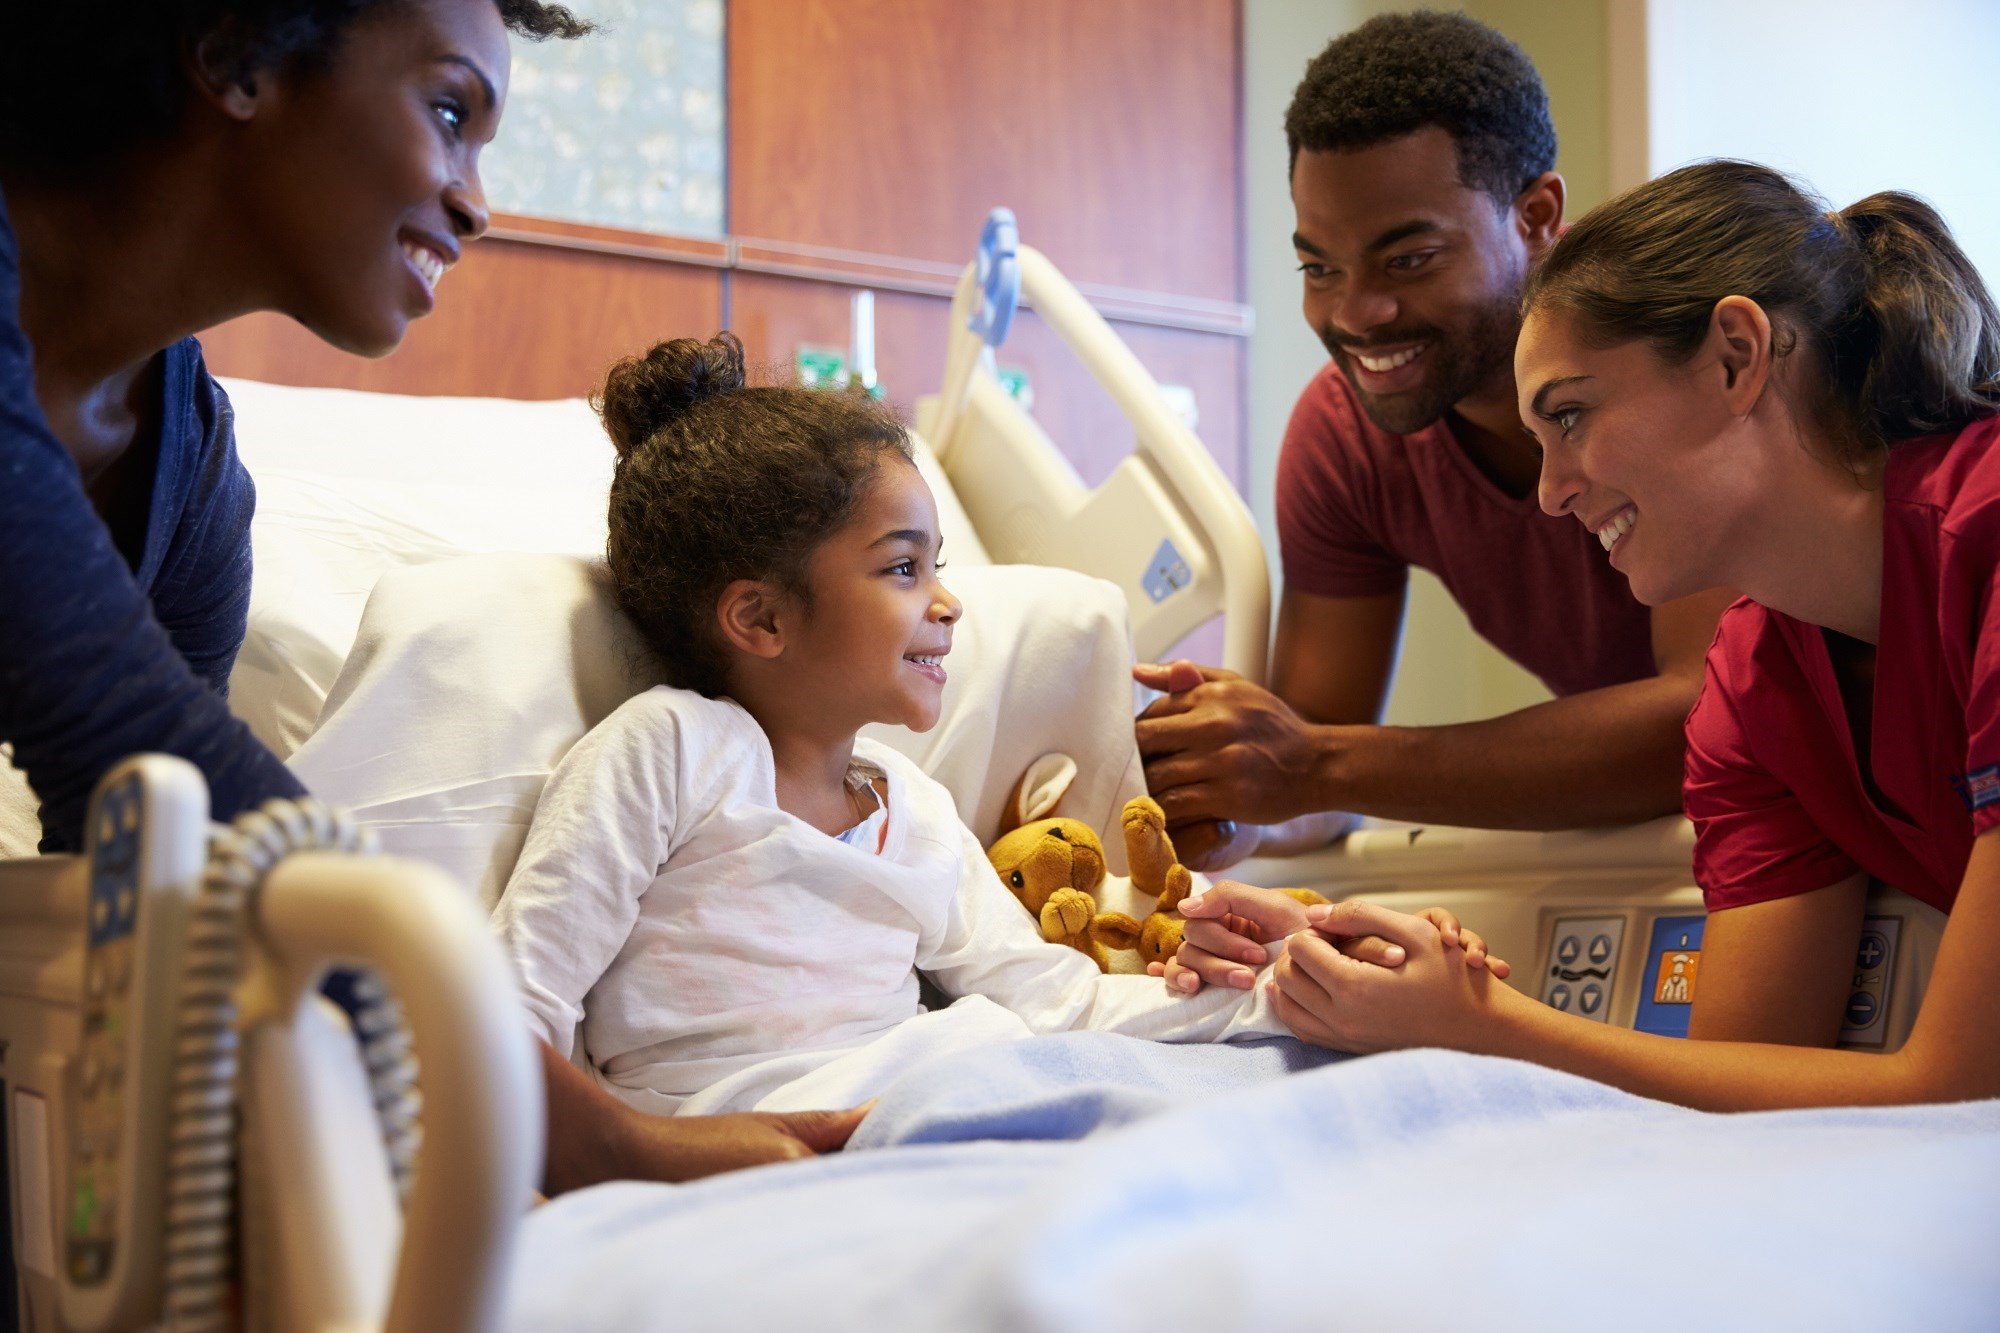 Clinical Pathway Effective in Reducing Discharge Opioids After Pediatric Orthopedic Surgery